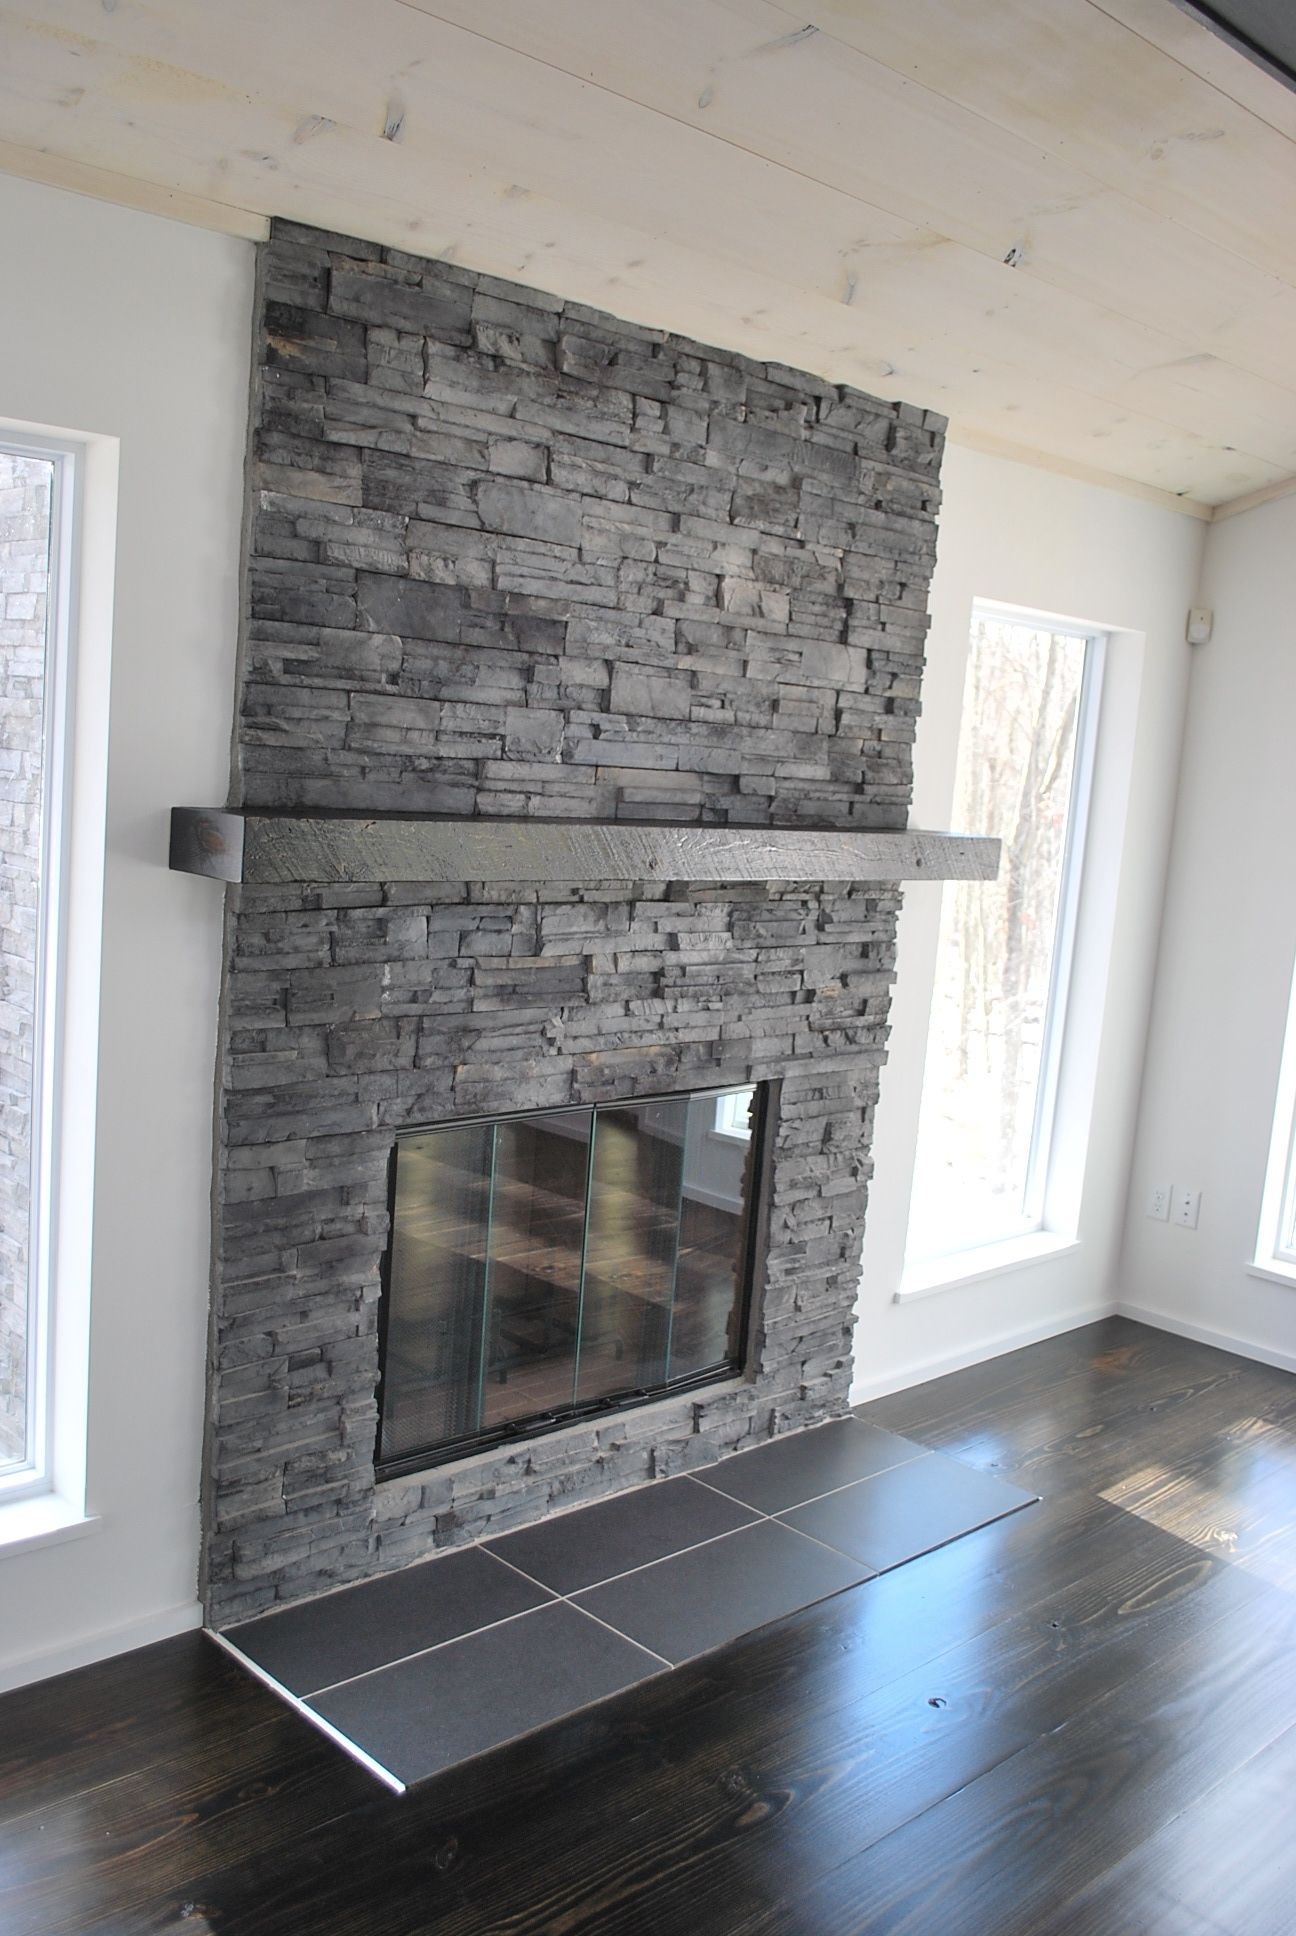 Westchester farmledge our favorite fireplaces for Stonecraft fireplaces